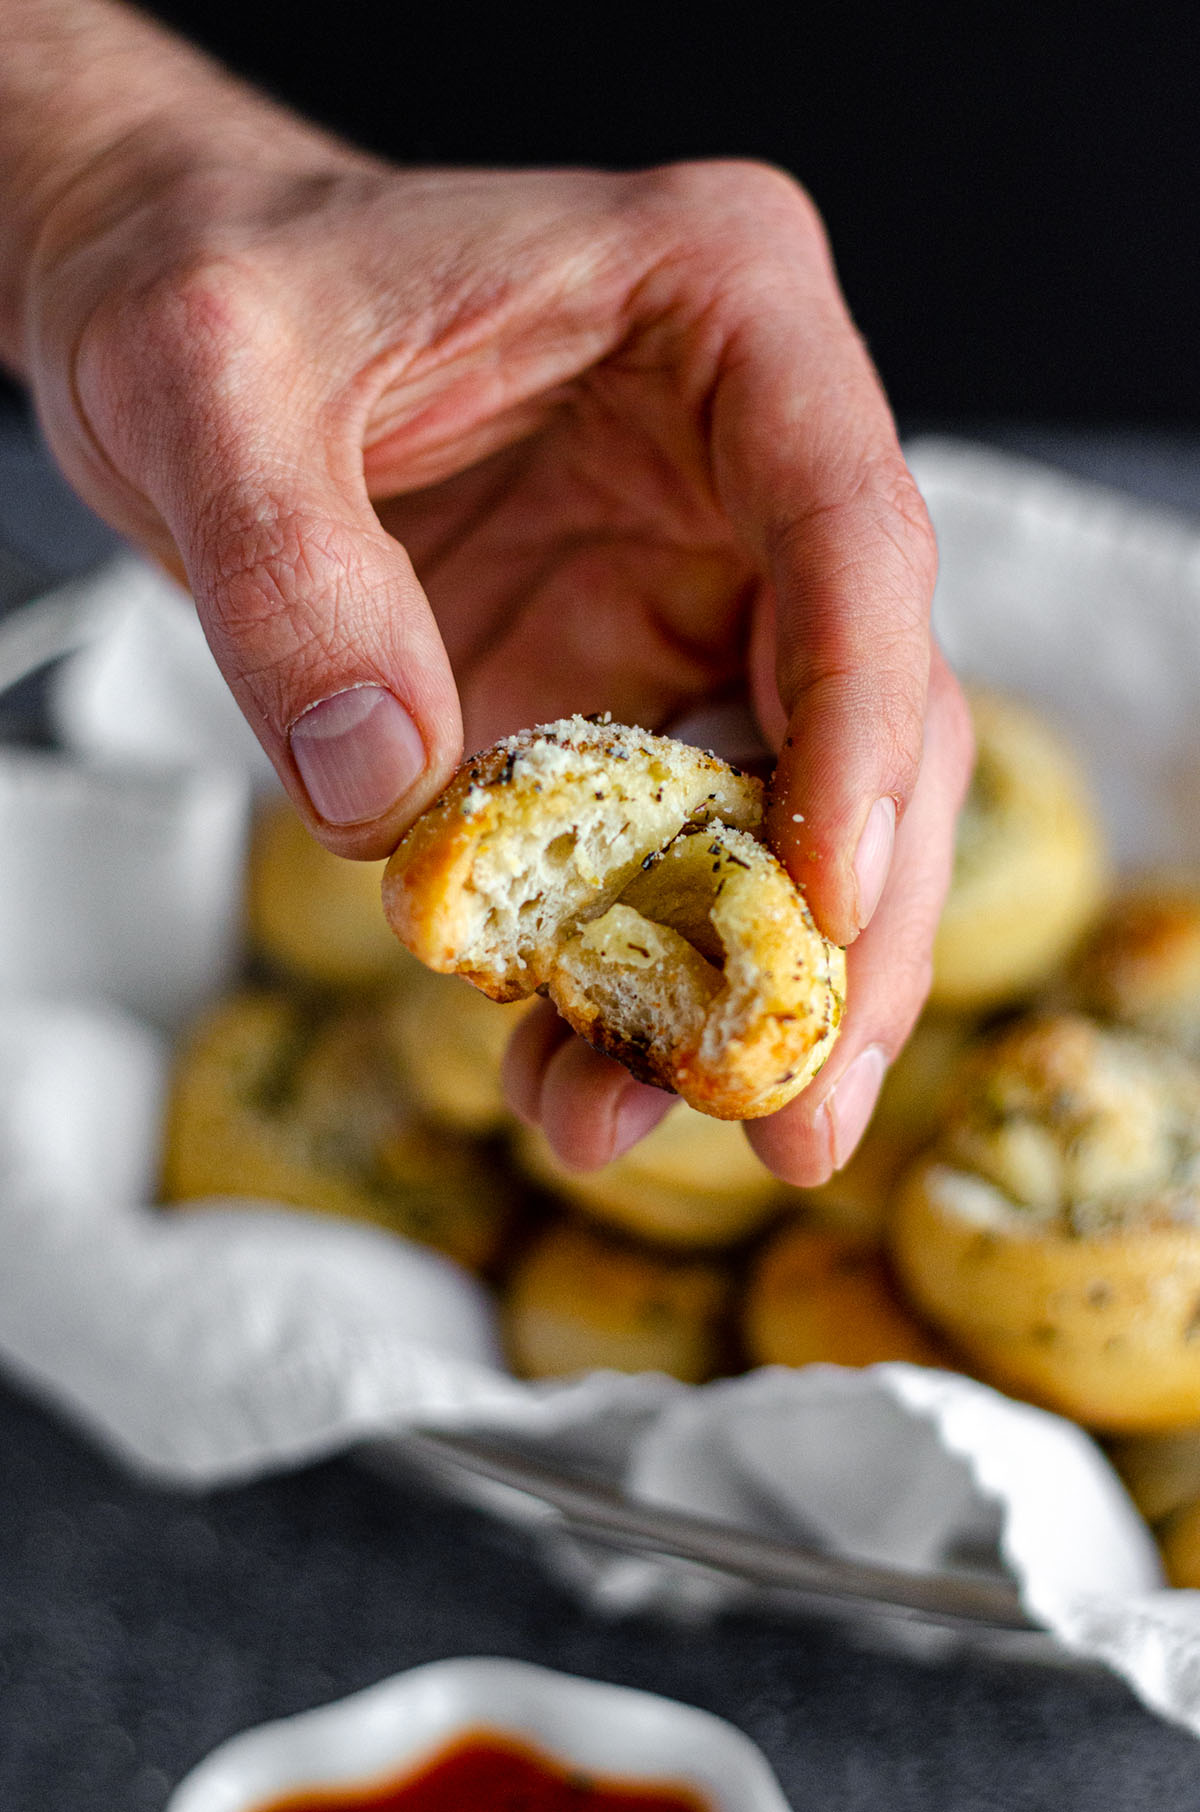 hand holding a homemade garlic knot with a bite taken out of it